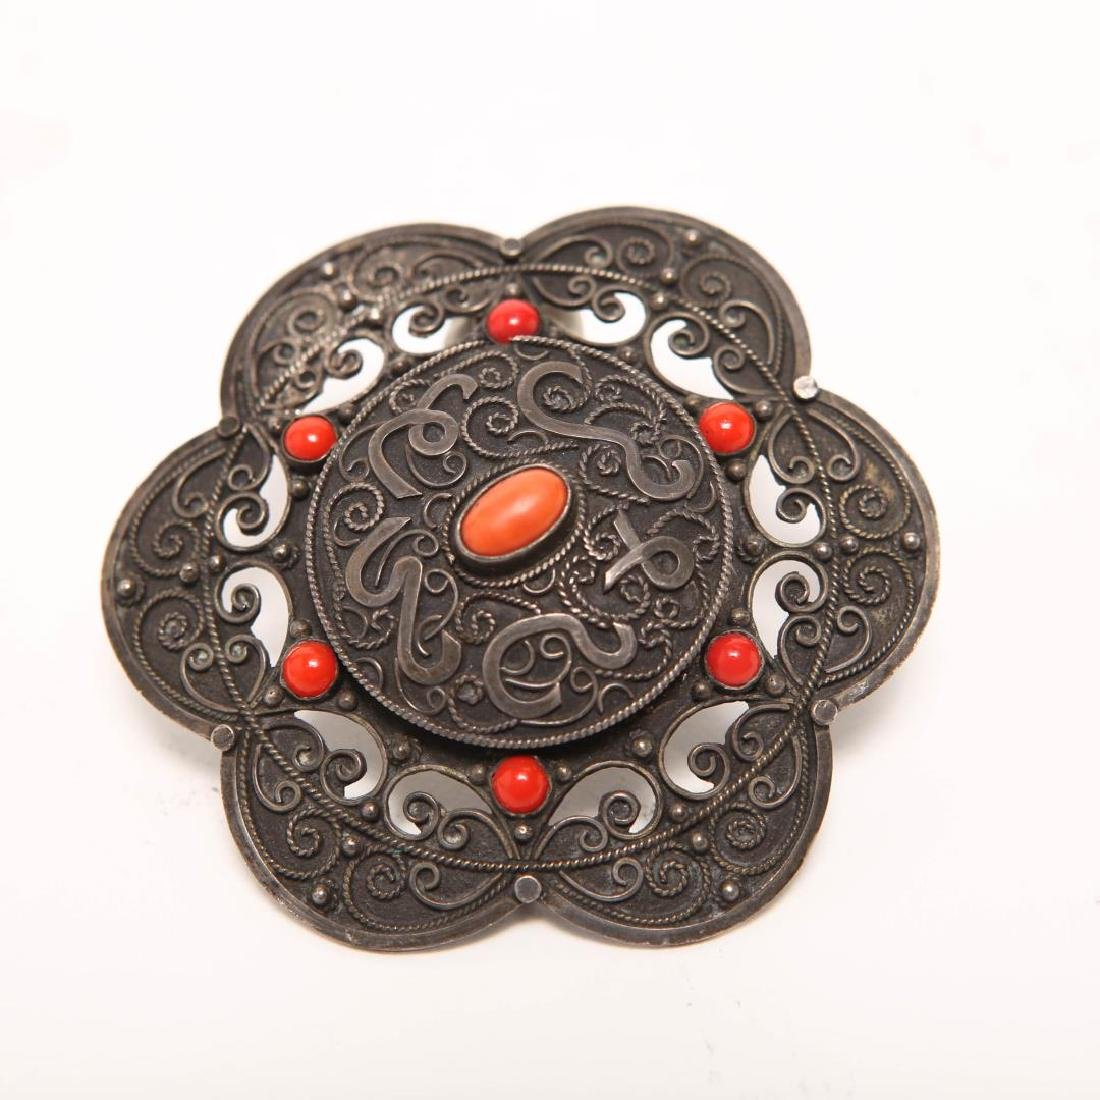 Middle Eastern Silver & Coral Pendant or Brooch